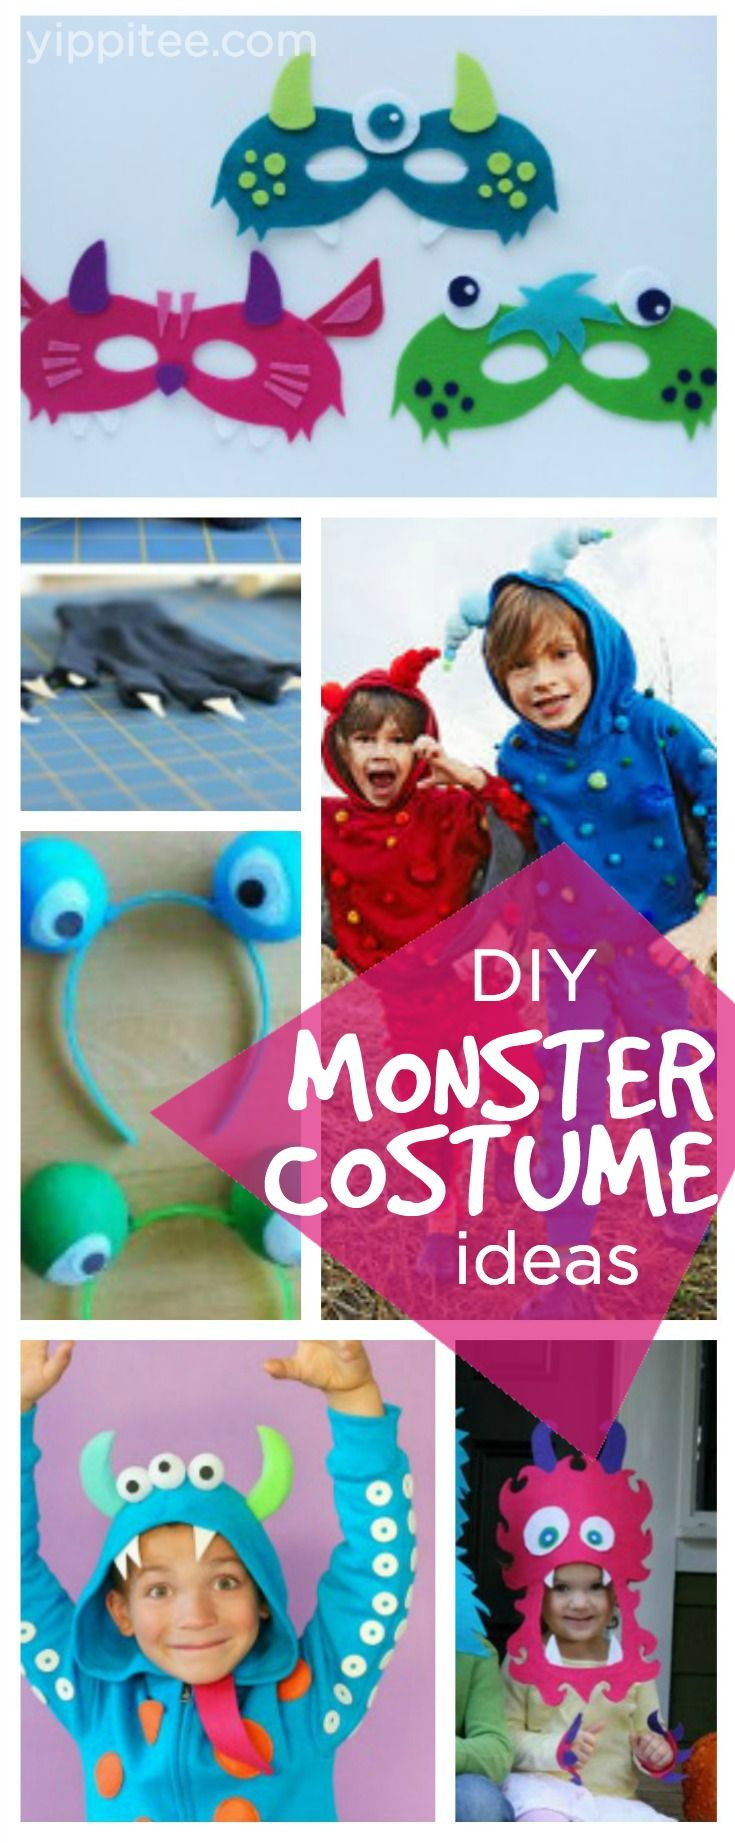 How To Make Your Own Halloween Costume Ideas